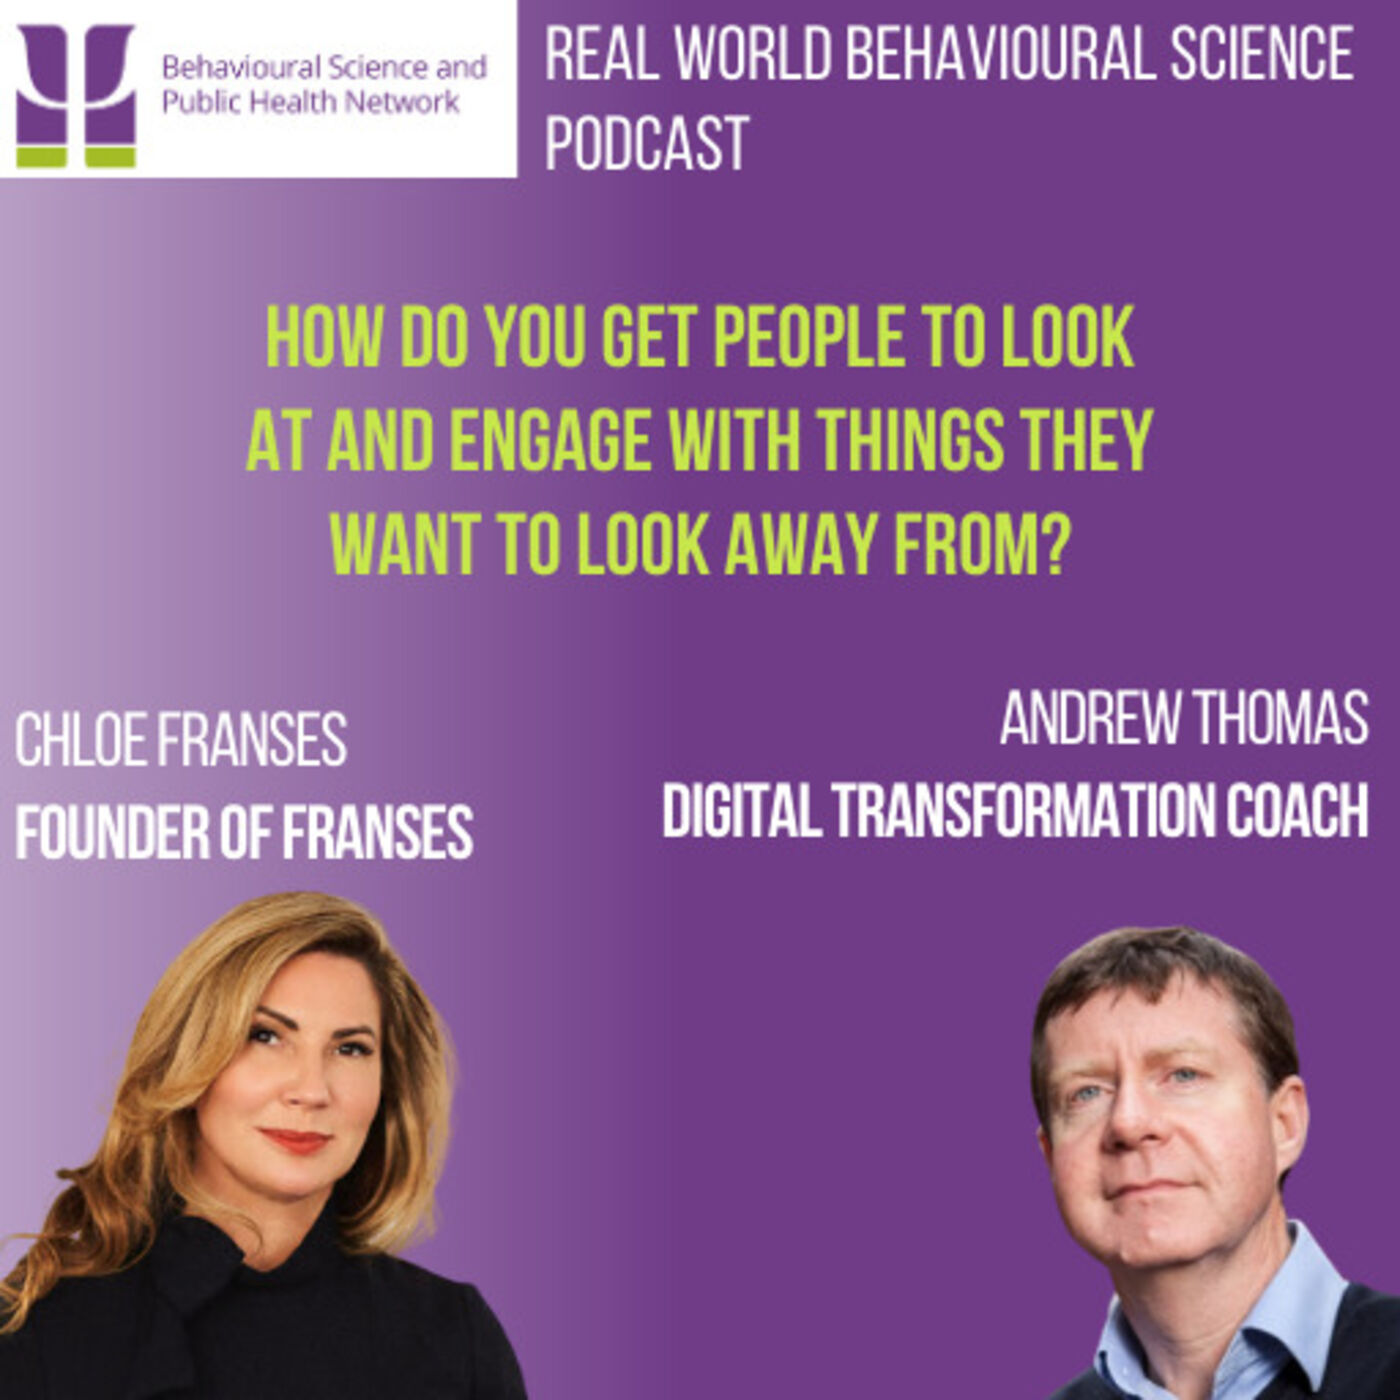 Chloe Franses (Founder of Franses) & Andrew Thomas (Digital Transformation Coach)